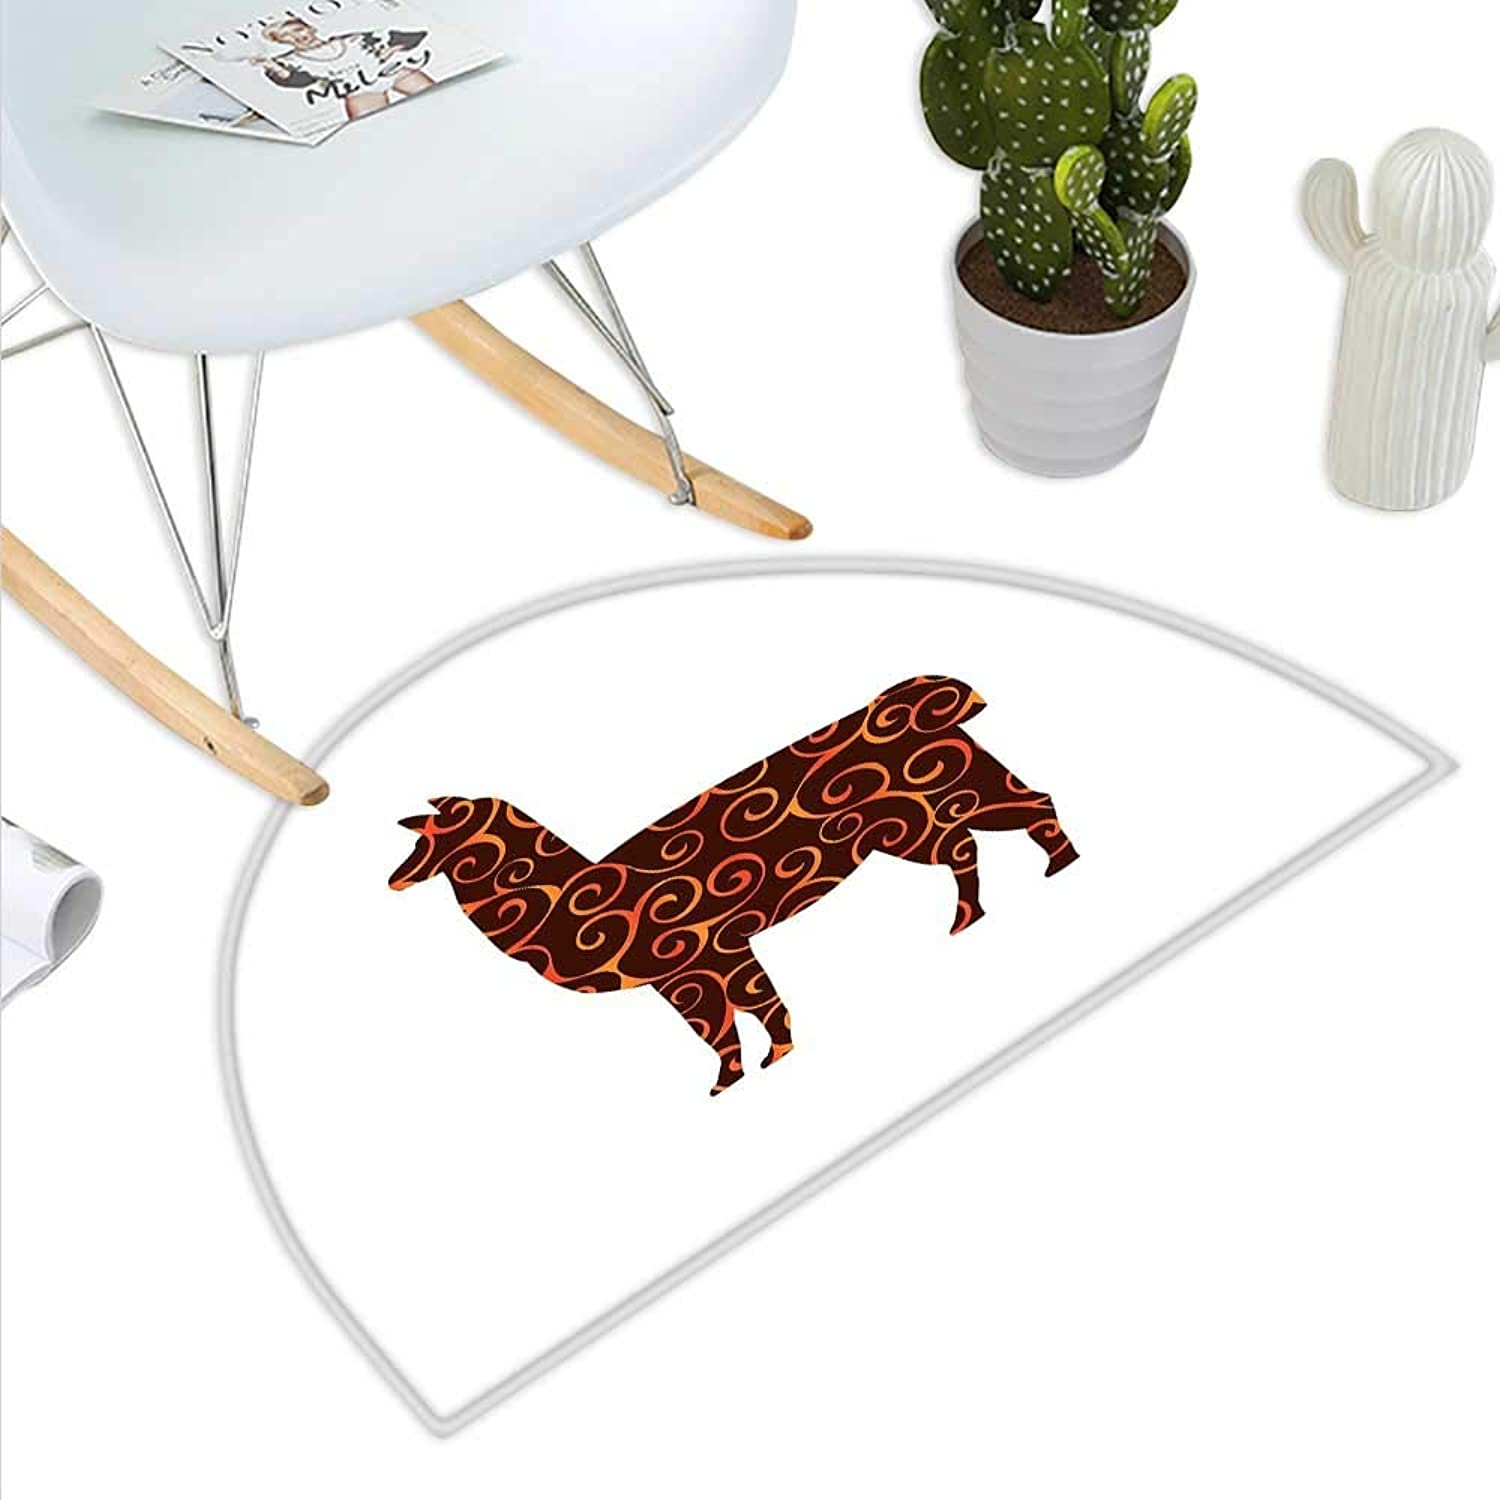 Llama Semicircle Doormat South American Domestic Animal Silhouette with Swirled Lines Abstract Alpaca Design Halfmoon doormats H 47.2  xD 70.8  orange Brown